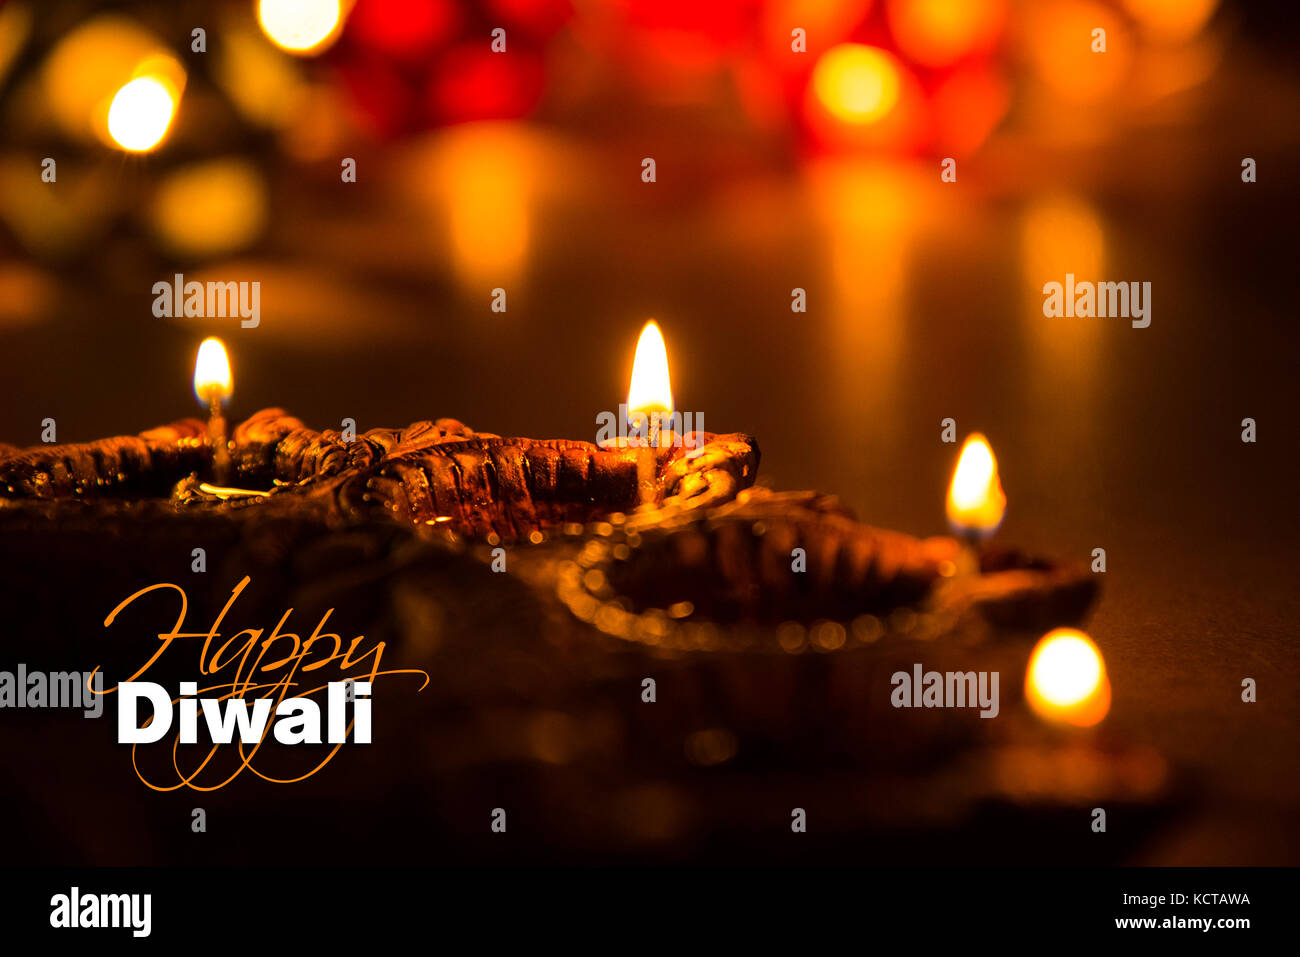 Diwali greetings stock photos diwali greetings stock images alamy stock photo of diwali greeting card showing illuminated diya or oil lamp or panti with happy kristyandbryce Image collections